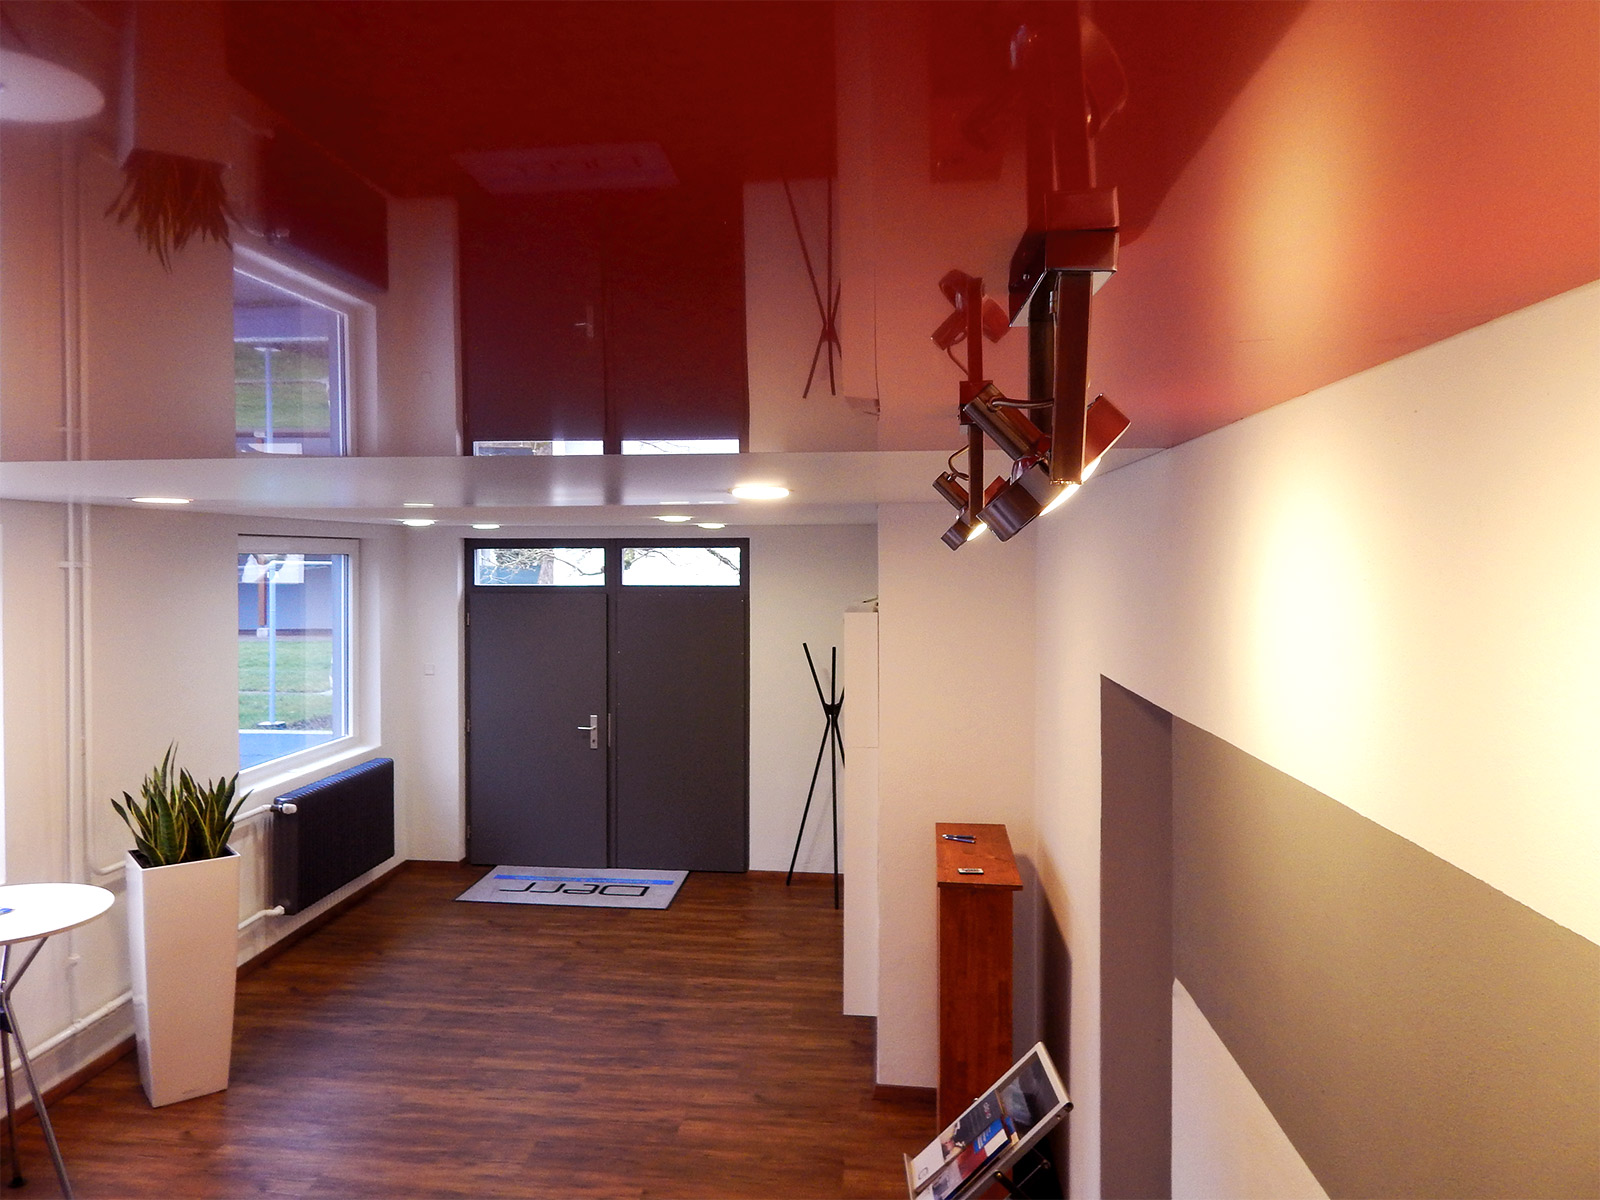 image-showroom-1-decken-derr-foto-art-by-travicawebdesign-slider